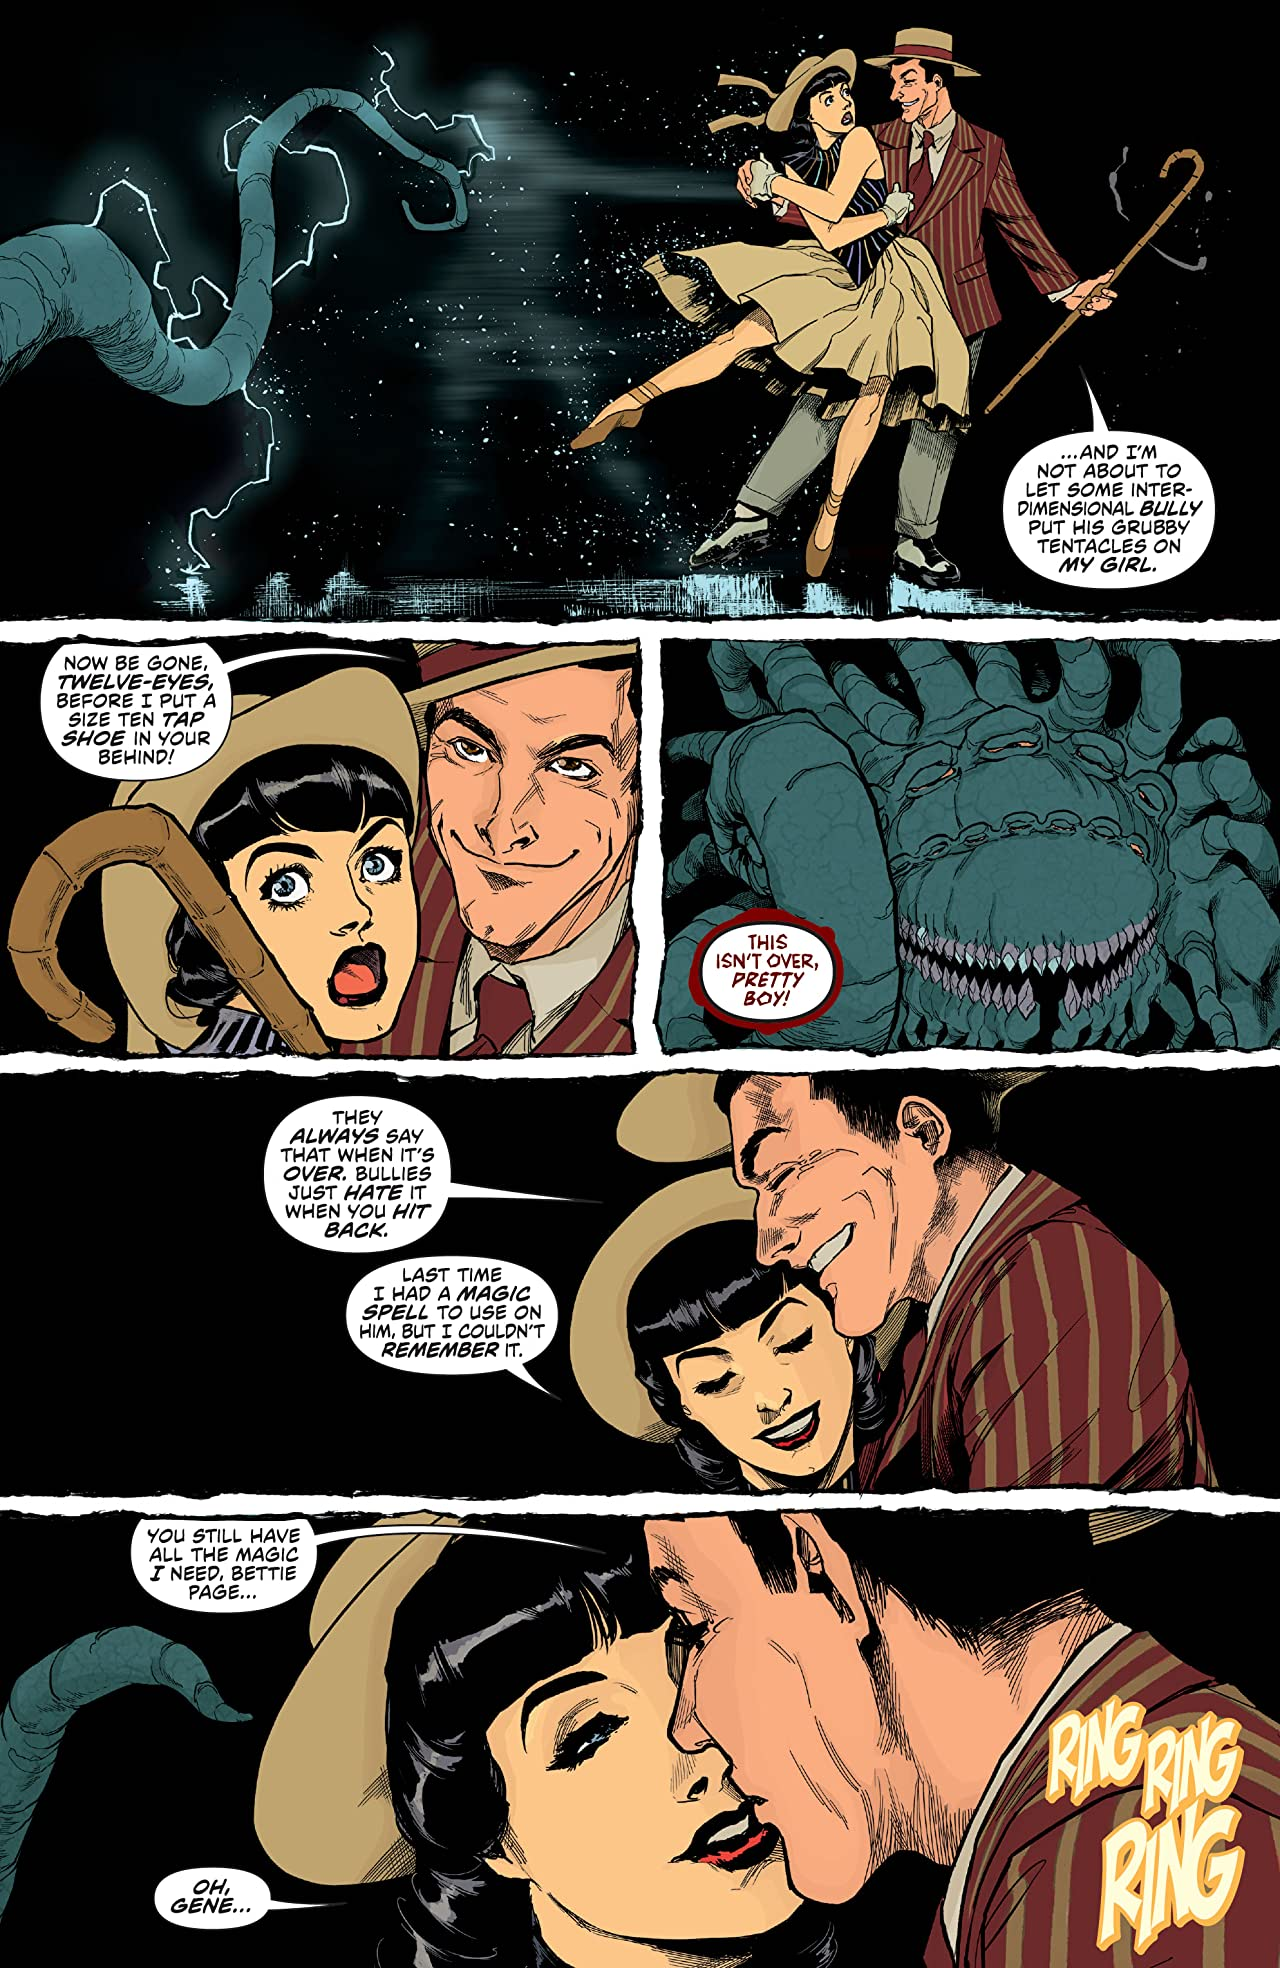 Bettie Page: The Princess and The Pin Up